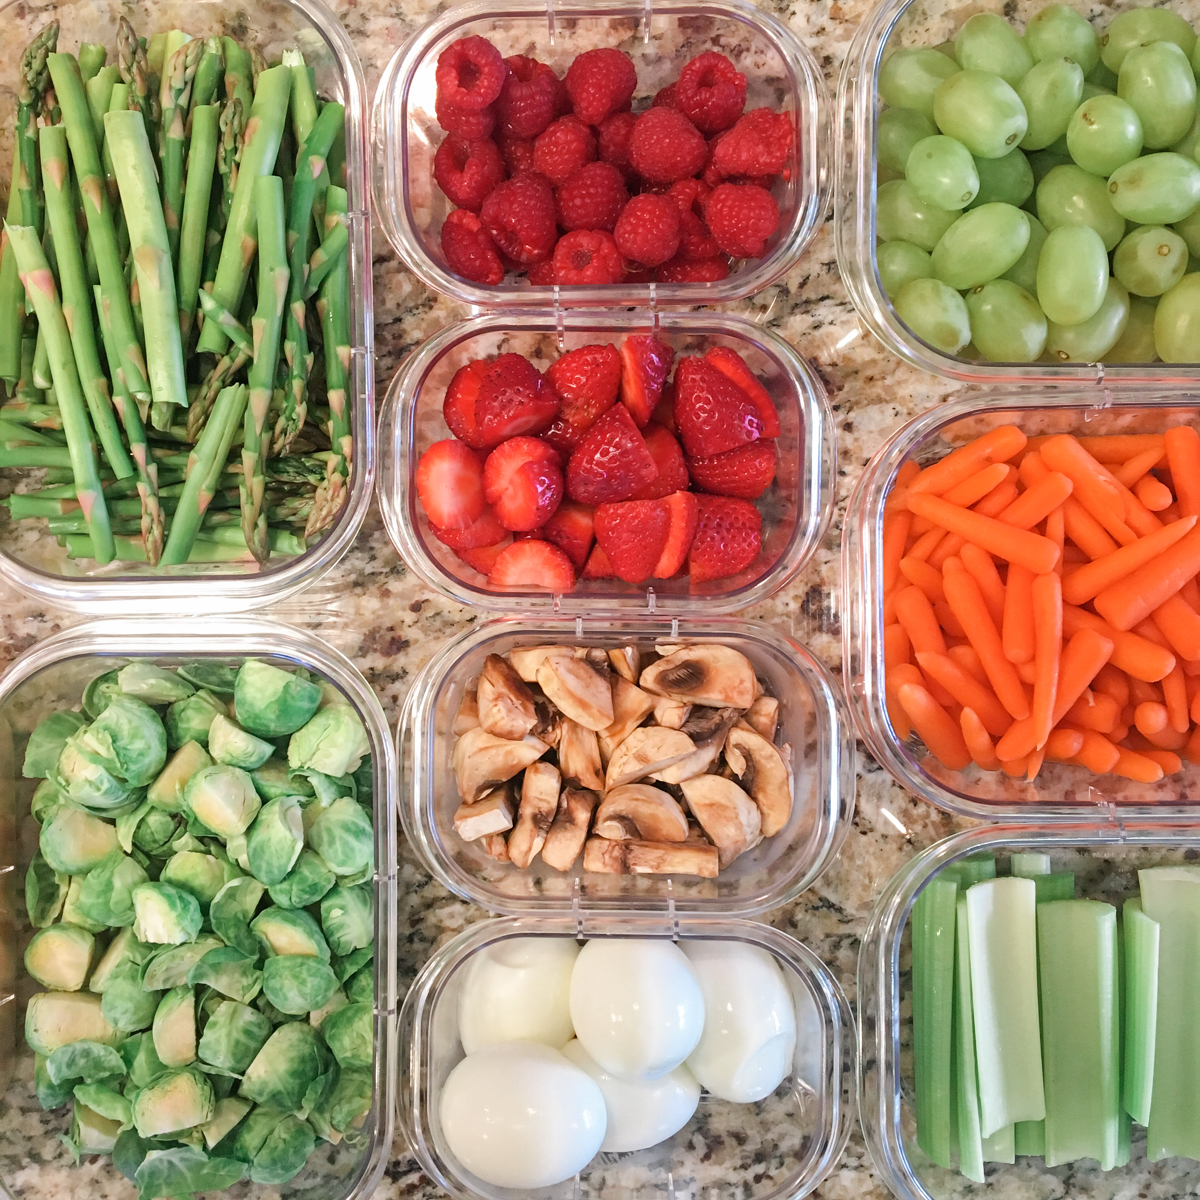 Clean Eating, 21 Day Cleanse, Cleanse, Meal Prep, Food Prep, Meal Planning, - Clean Eating Prep by popular South Carolina lifestyle blogger, Cristin Cooper